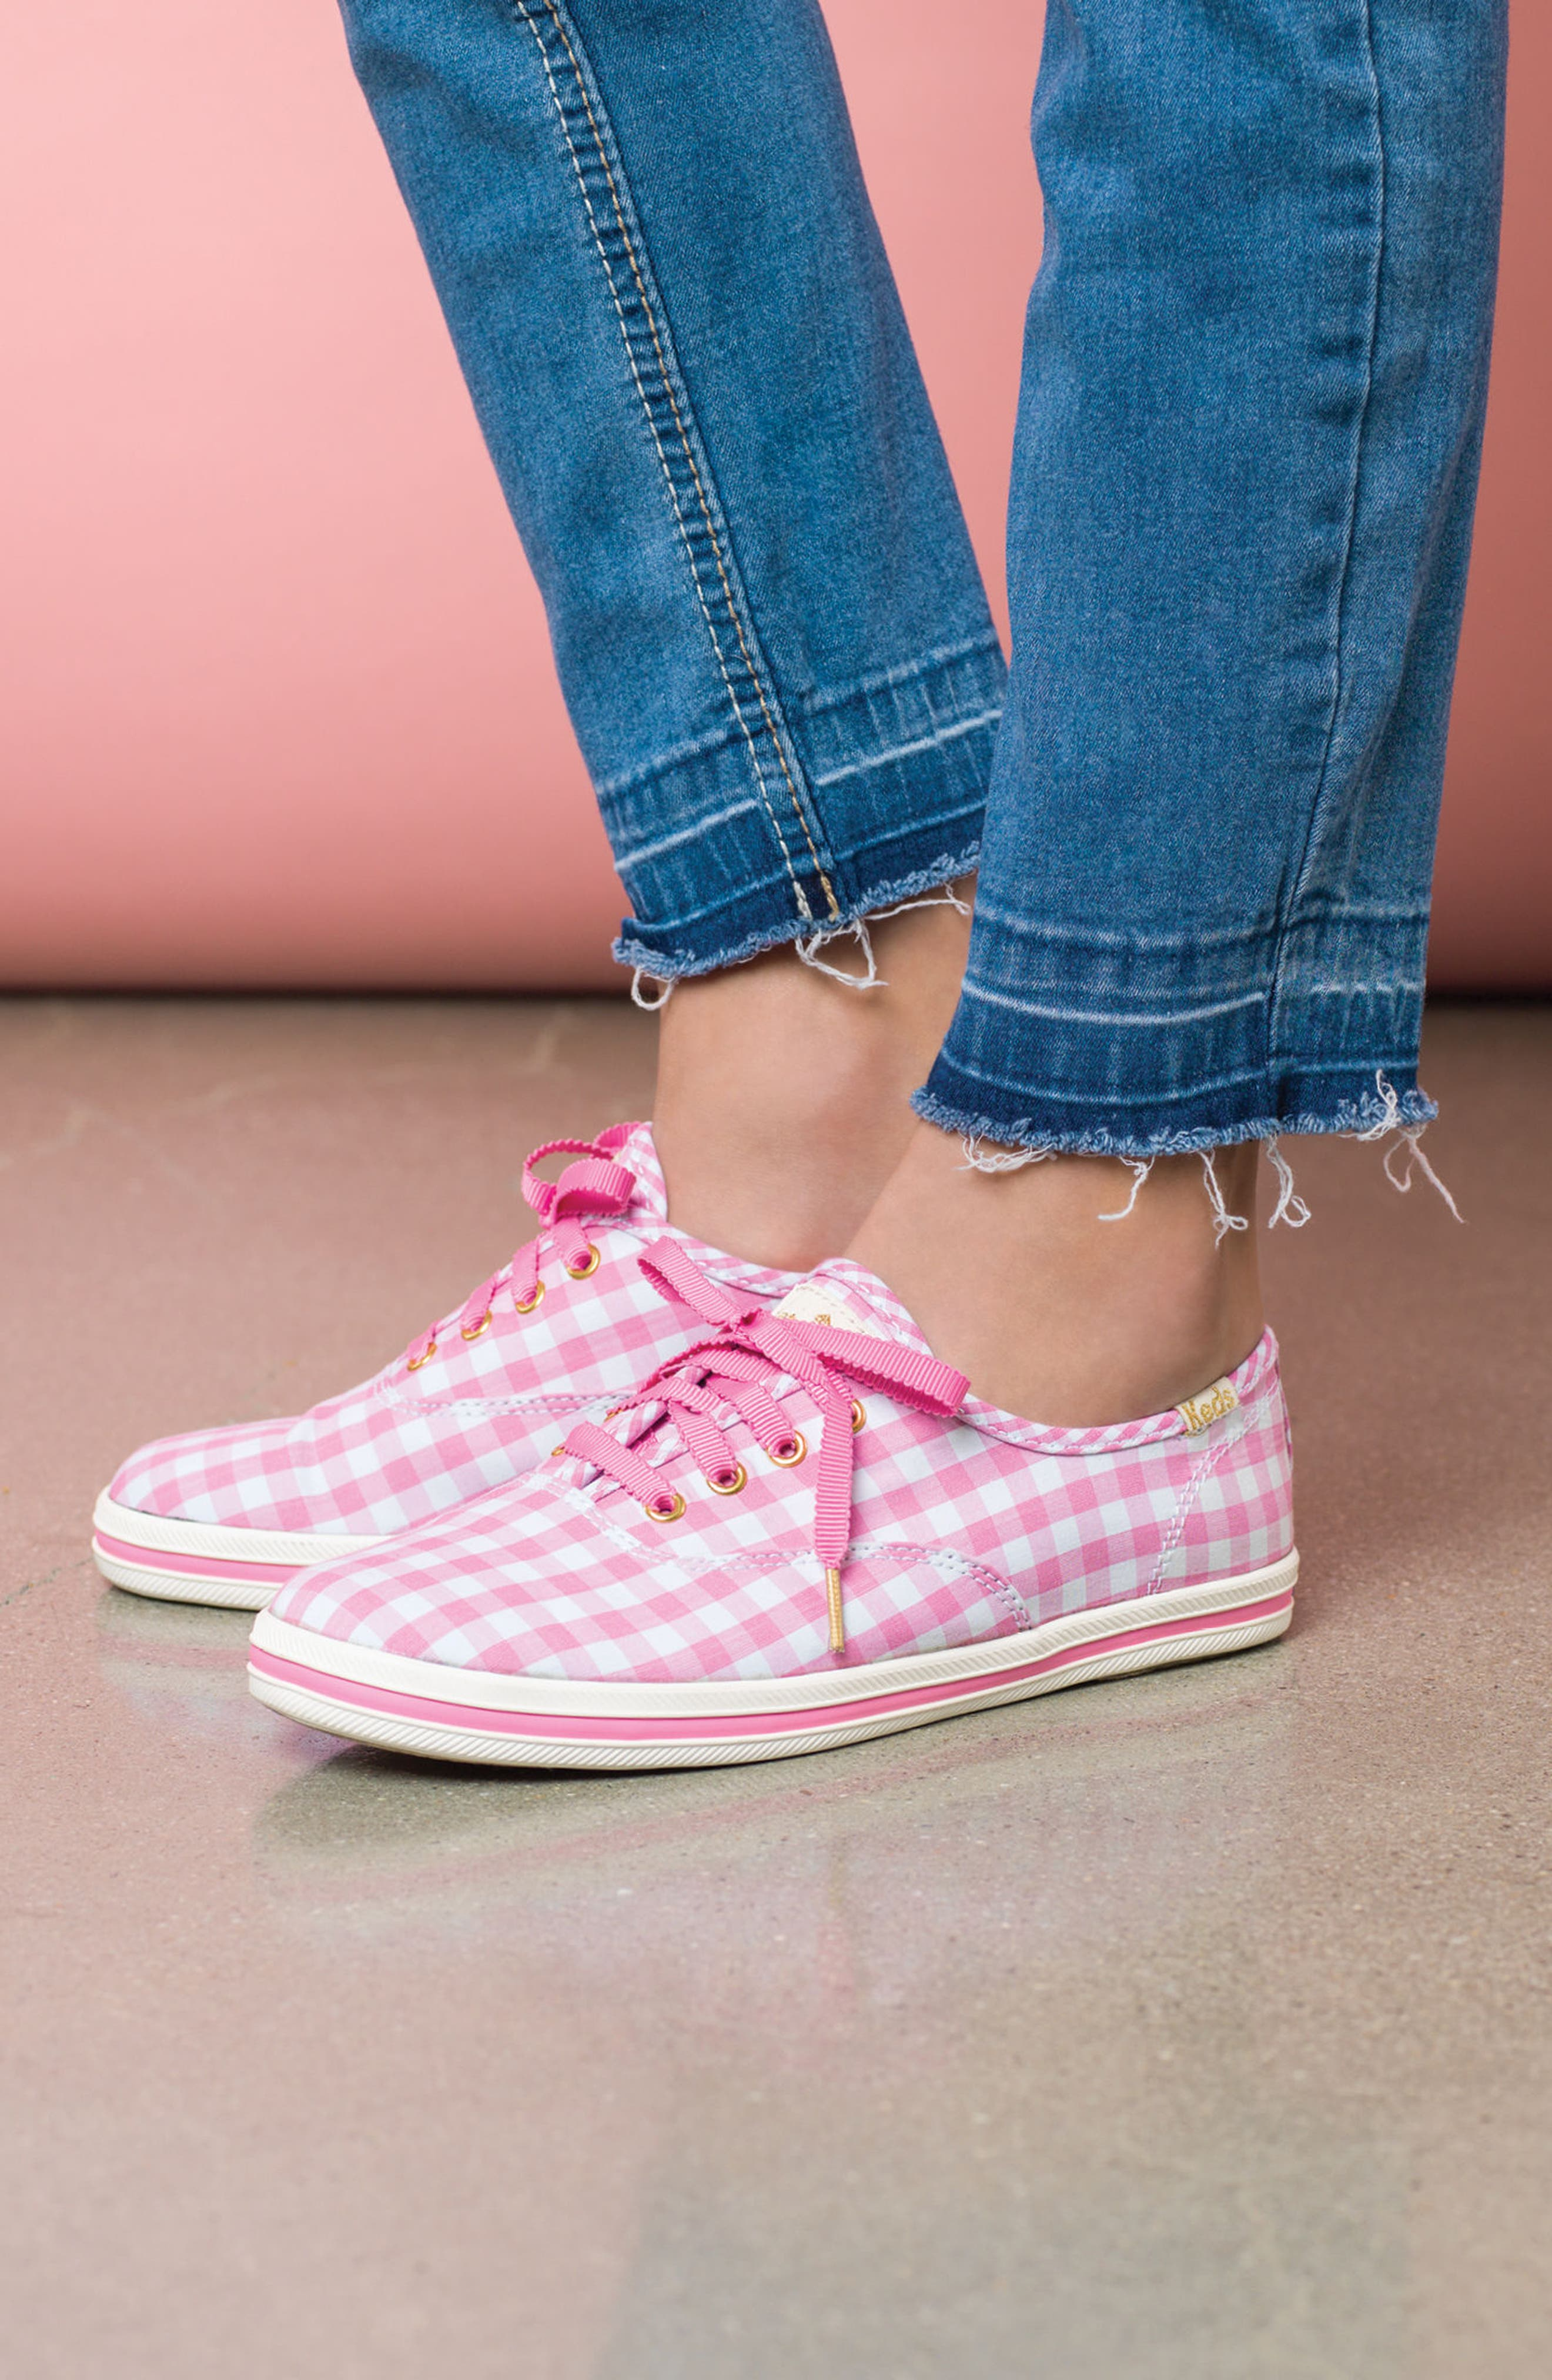 x kate spade new york champion gingham lace-up shoe,                             Alternate thumbnail 7, color,                             650